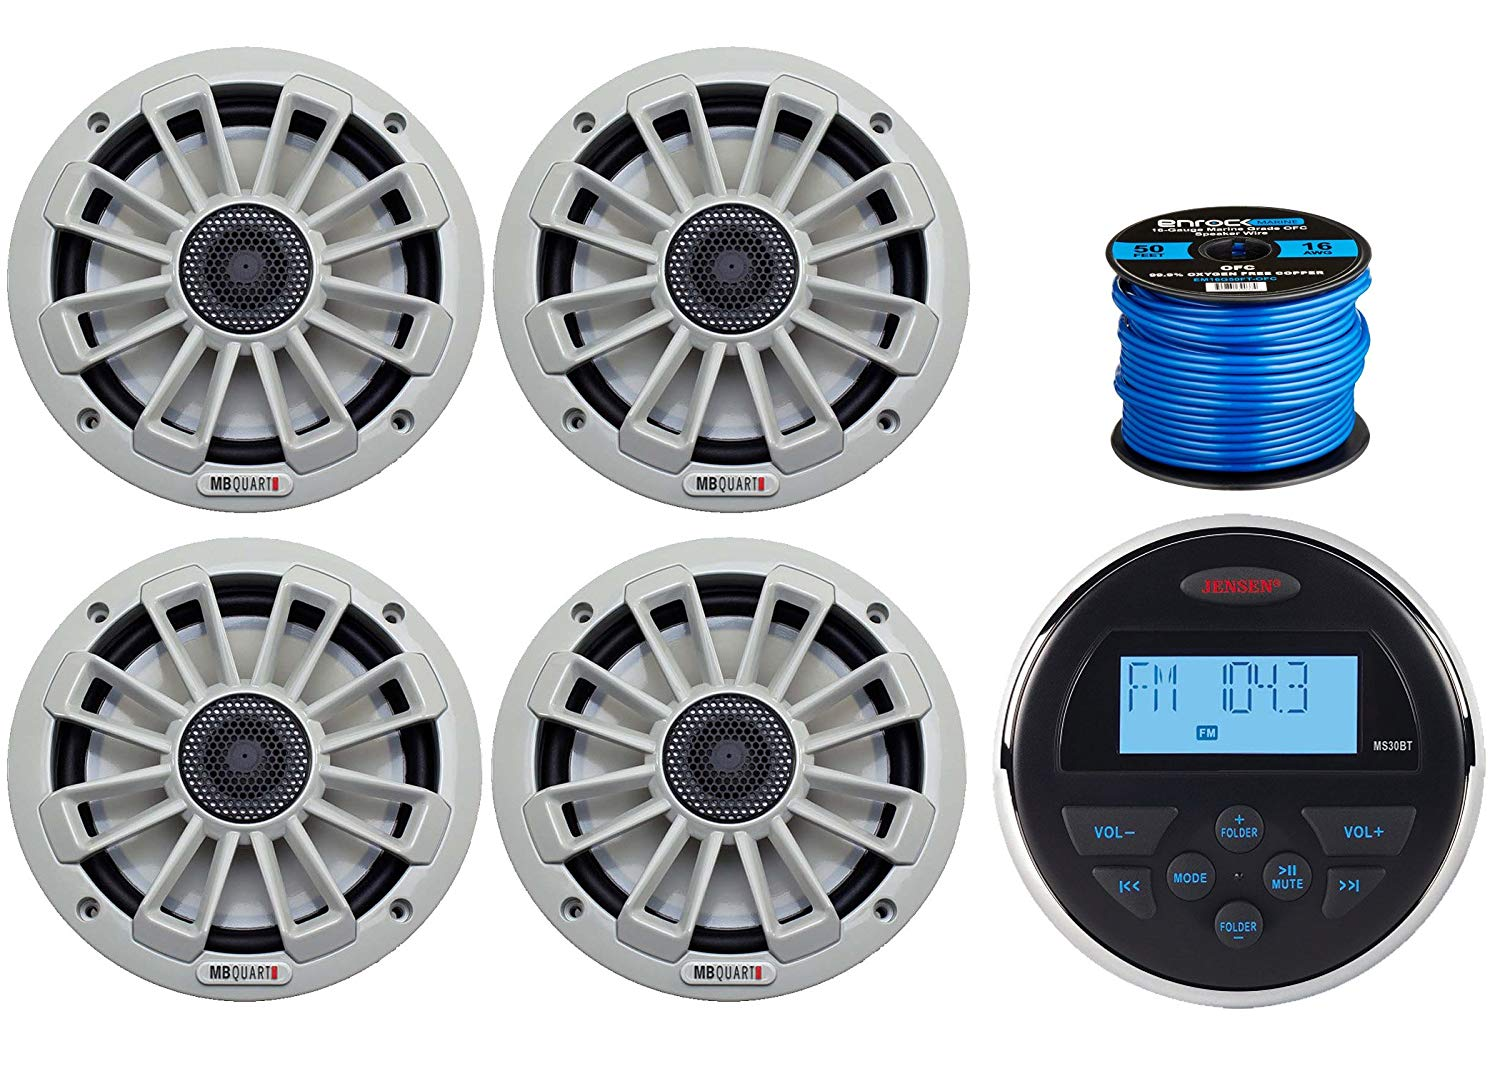 "Jensen MS-30BTR Mechless Compact Waterproof Stereo w/Bluetooth & USB Inputs, 4 x MB Quart NK1-116 6.5"" 2-Way Coaxial Marine Audio Stereo Speakers, Enrock Marine-Grade 50 Foot 16-Gauge Speaker Wire"